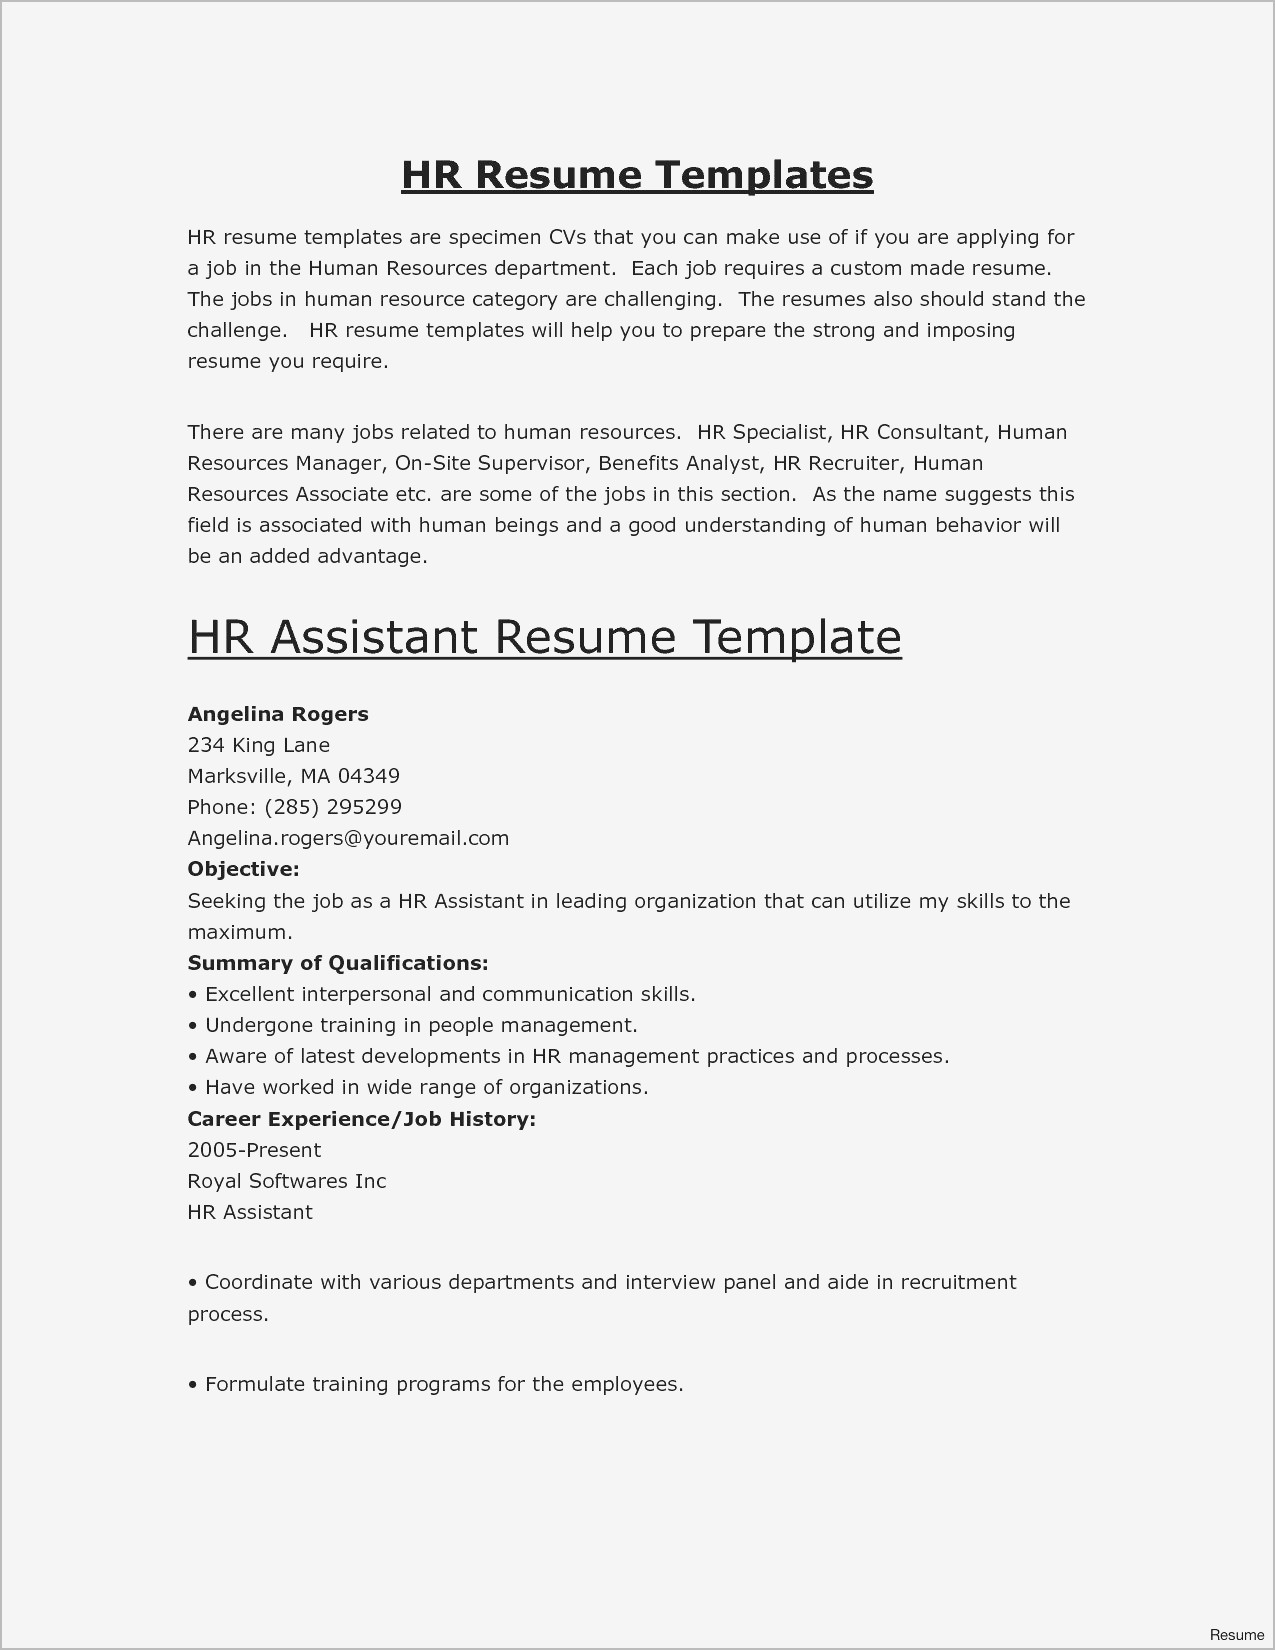 Words for Resumes - Resume Key Words Unique Keywords for Resumes Best Resume Keywords 0d